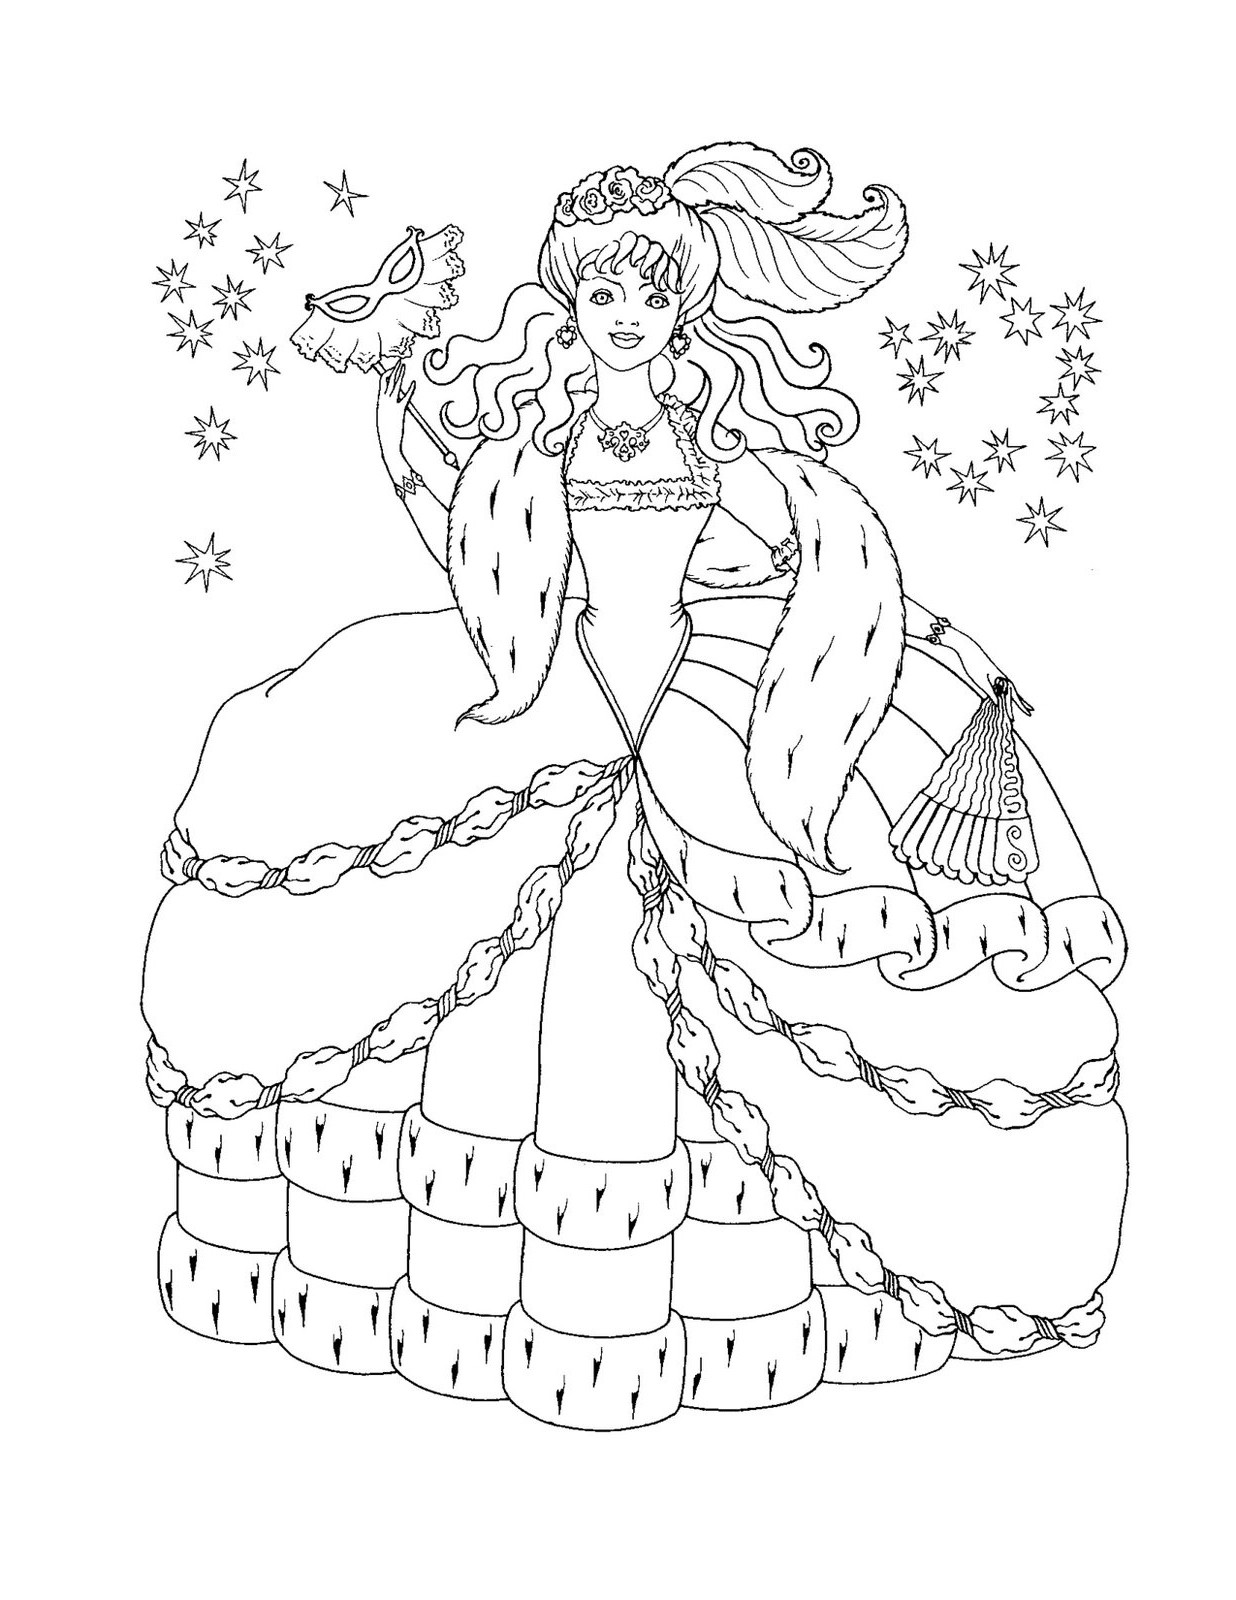 Best ideas about Ariel Princess Coloring Pages For Kids . Save or Pin Free Printable Disney Princess Coloring Pages For Kids Now.